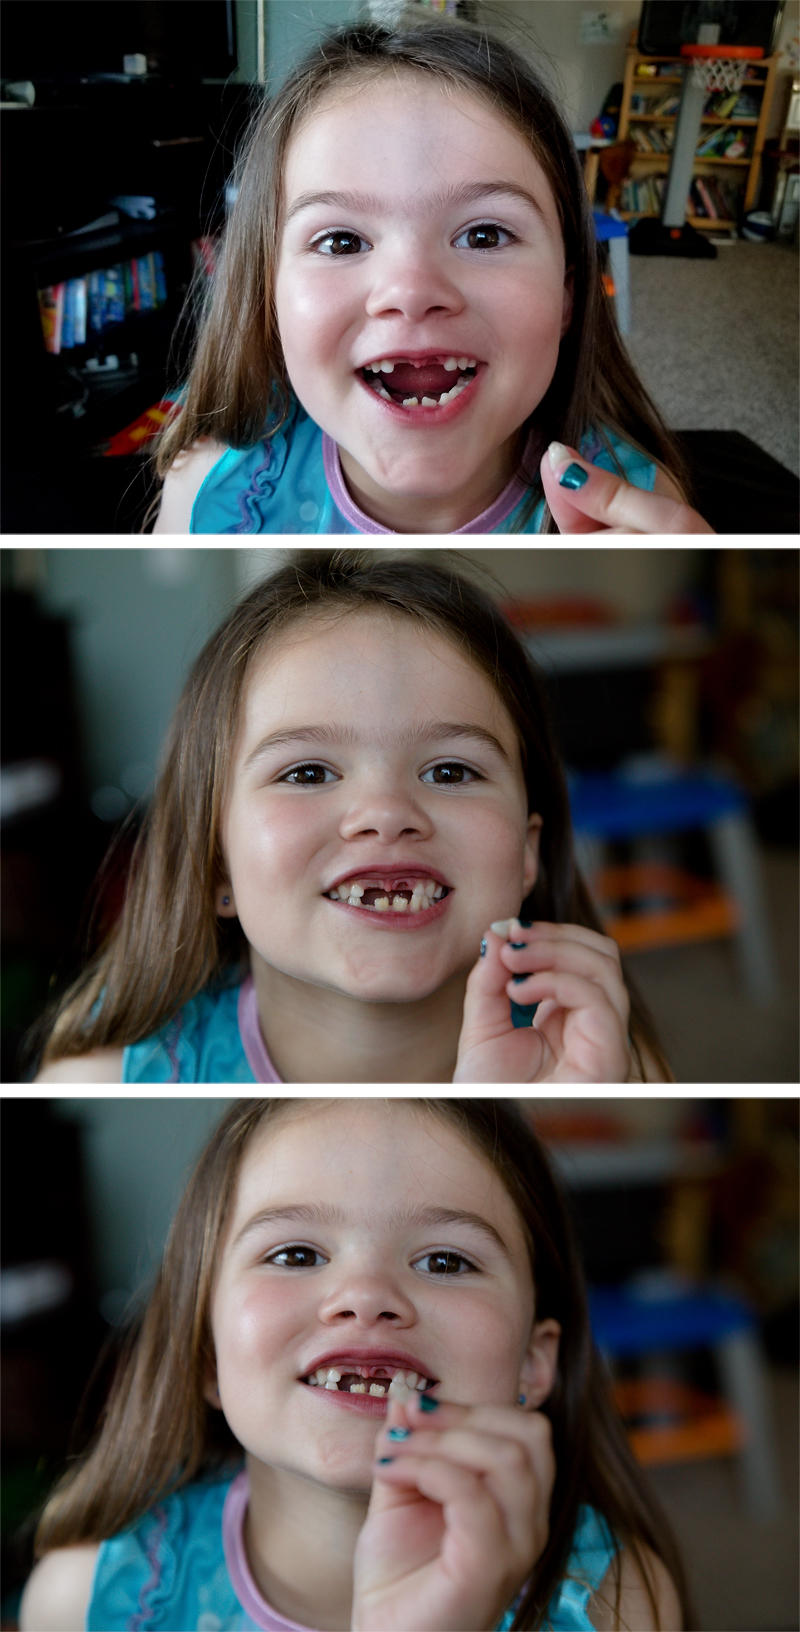 Missing Two Front Teeth